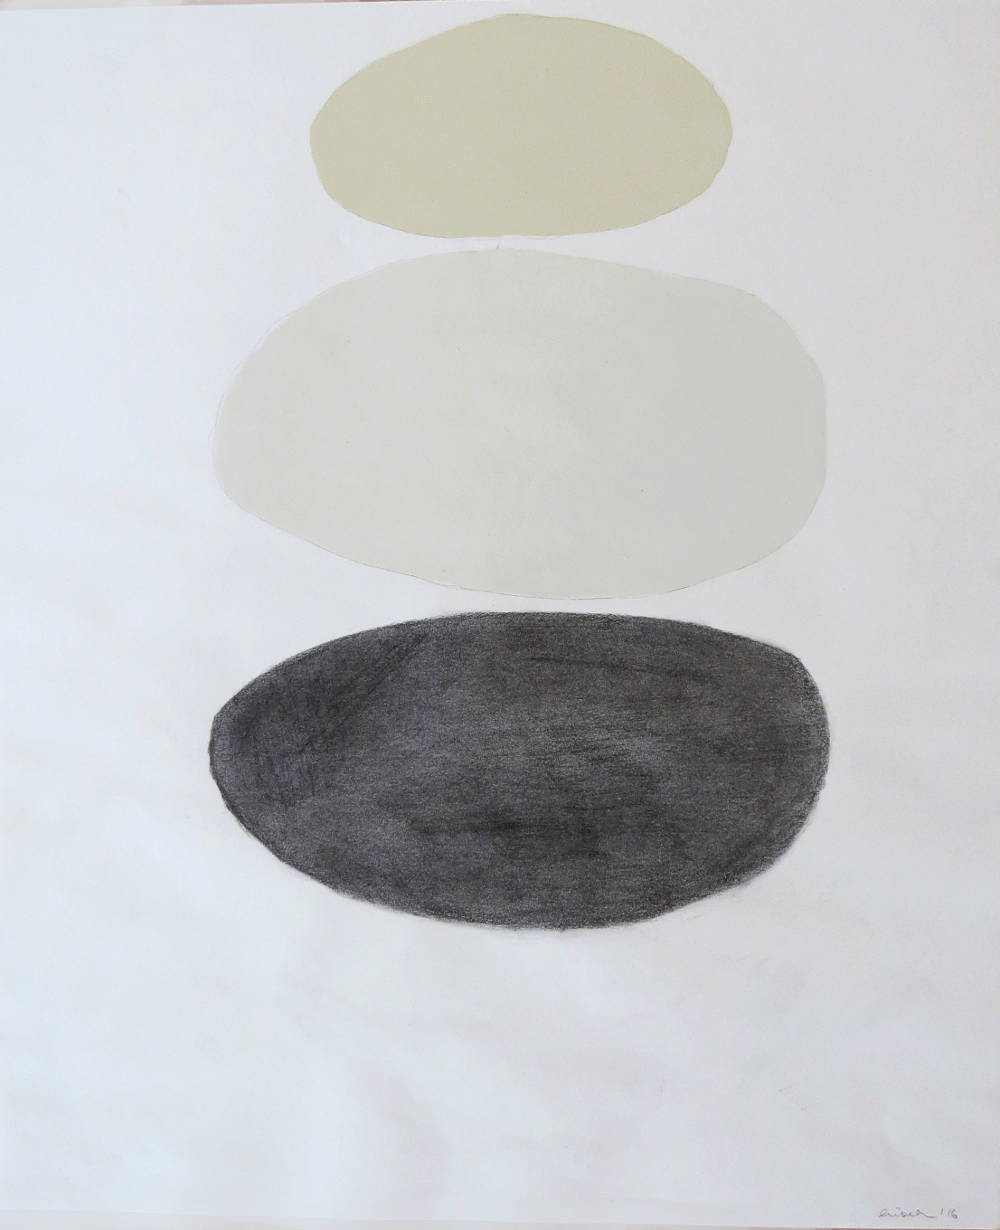 Lisbeth McCoy, Untitled I, 2016, diluted oil paint and graphite on paper, 17 x 14 inches